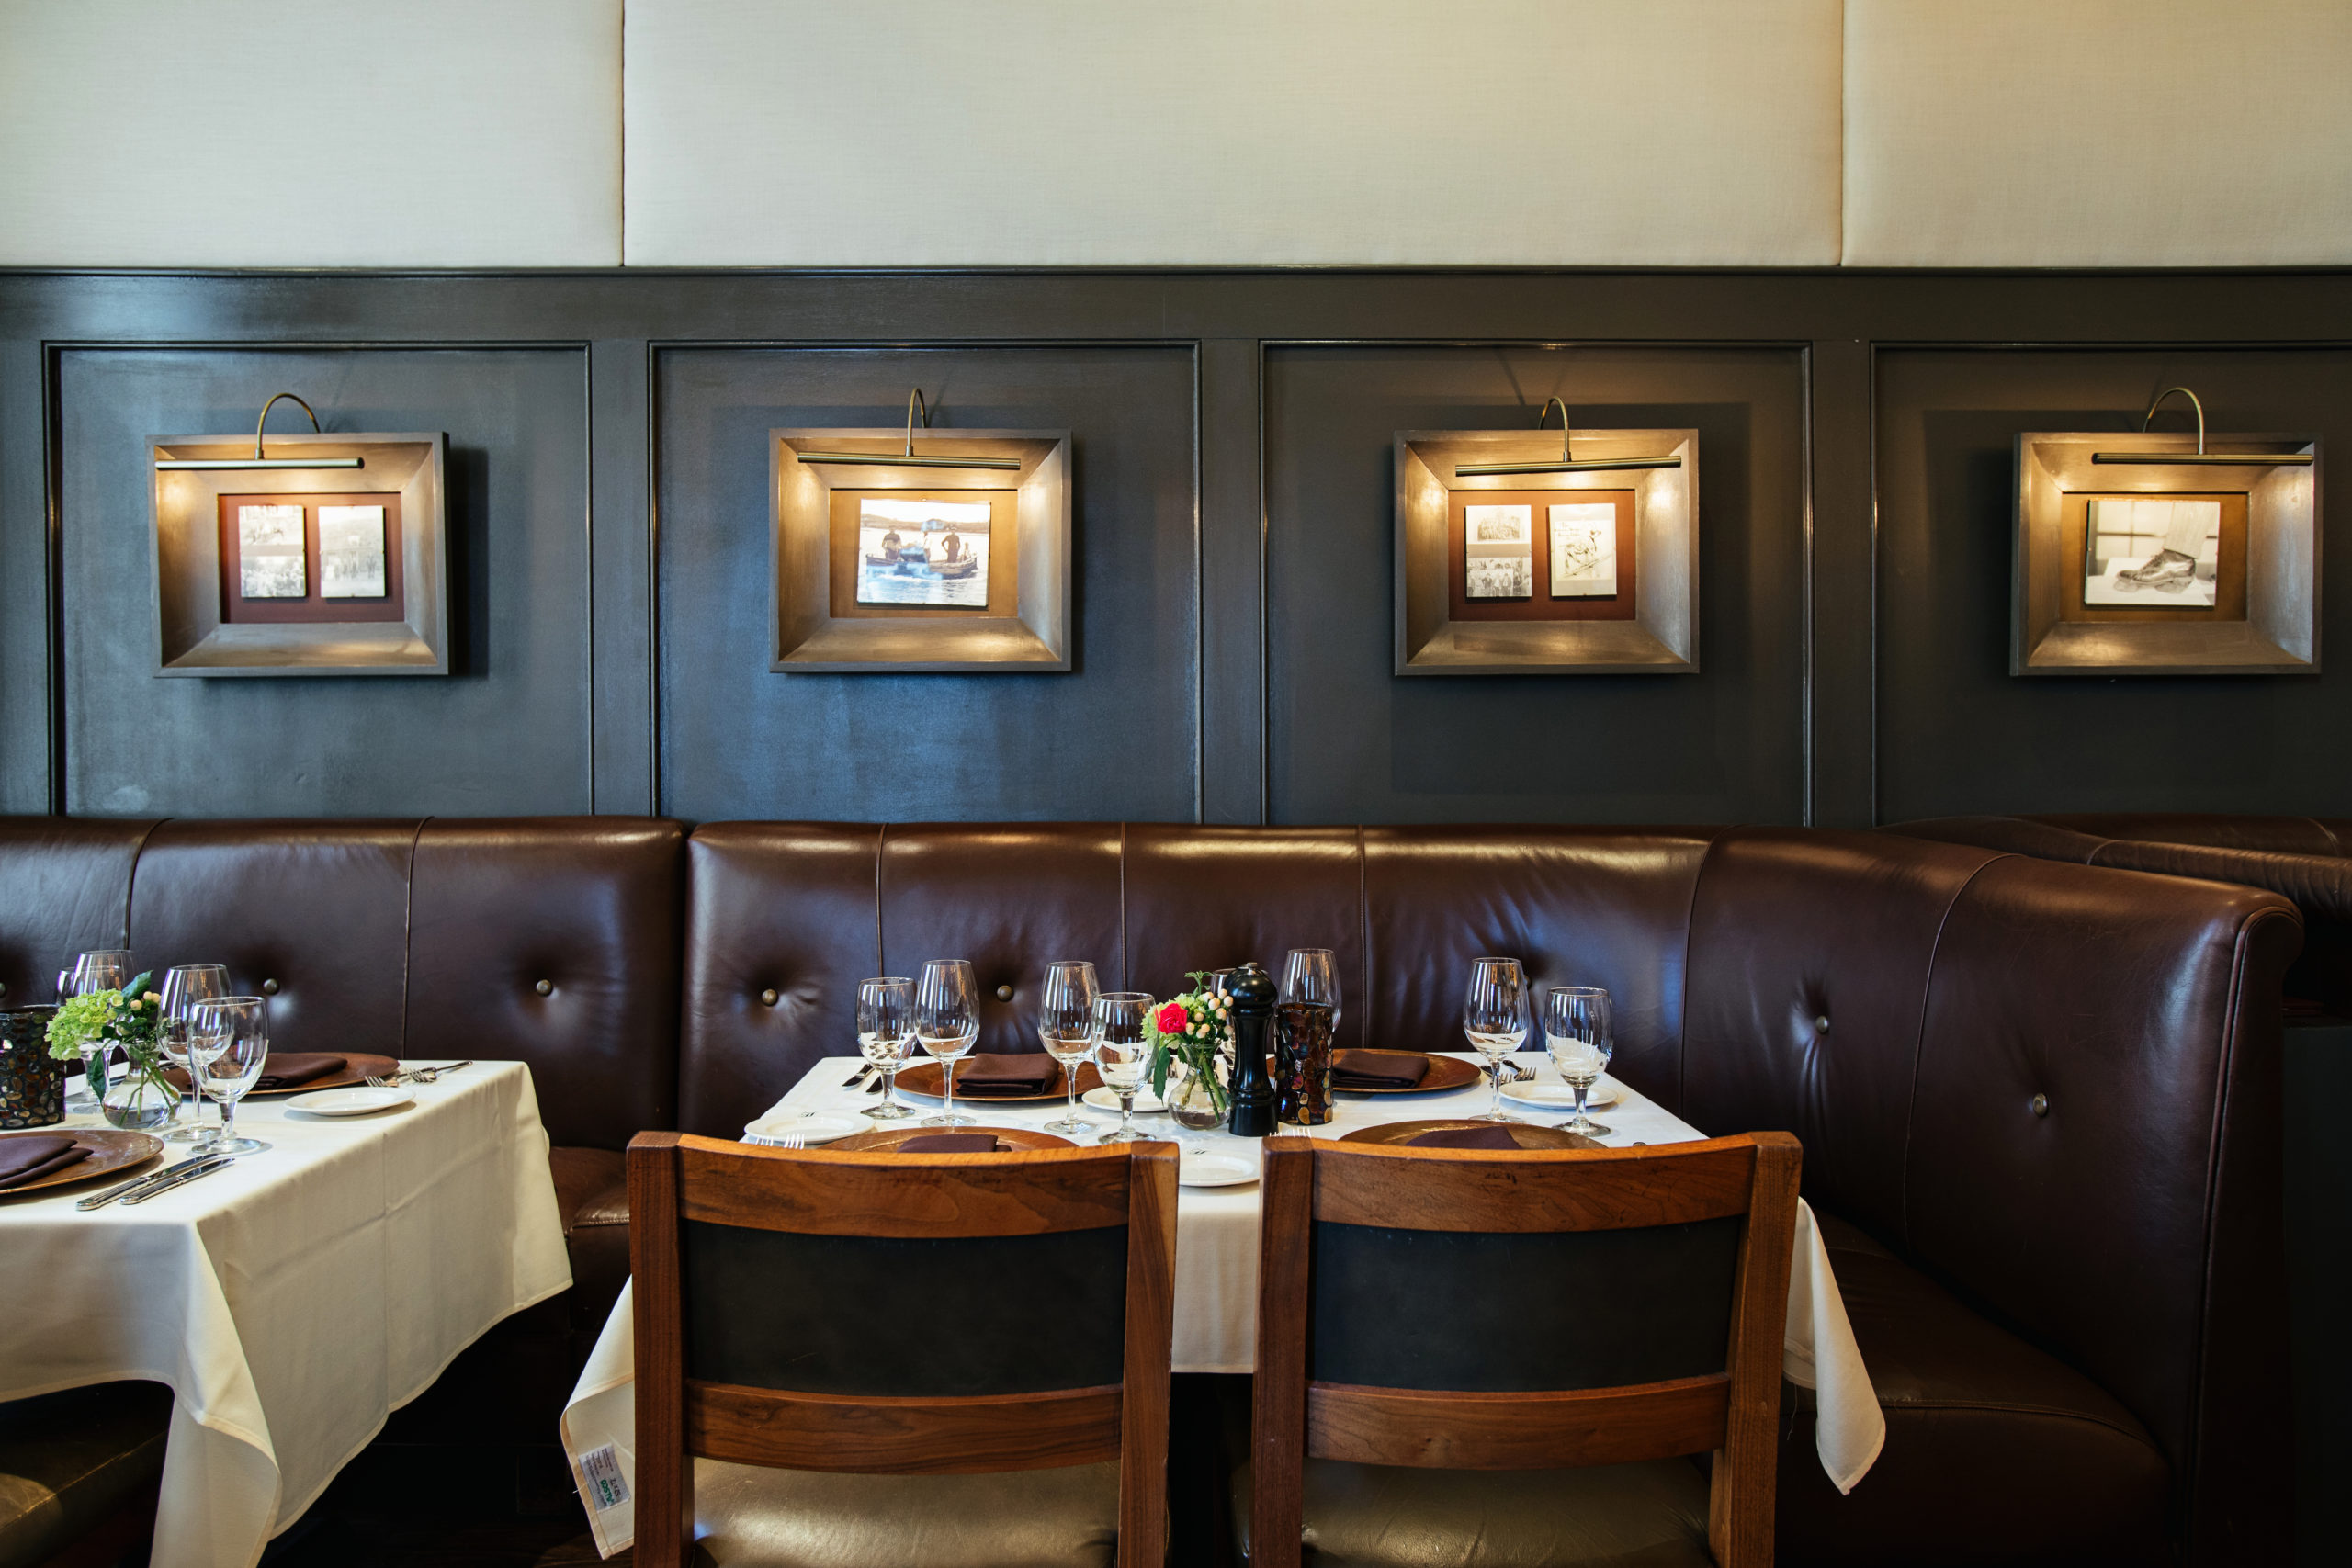 Elegant dinner table with table linens, leather booth seating and a feature wall of artwork lit by overhead lamps